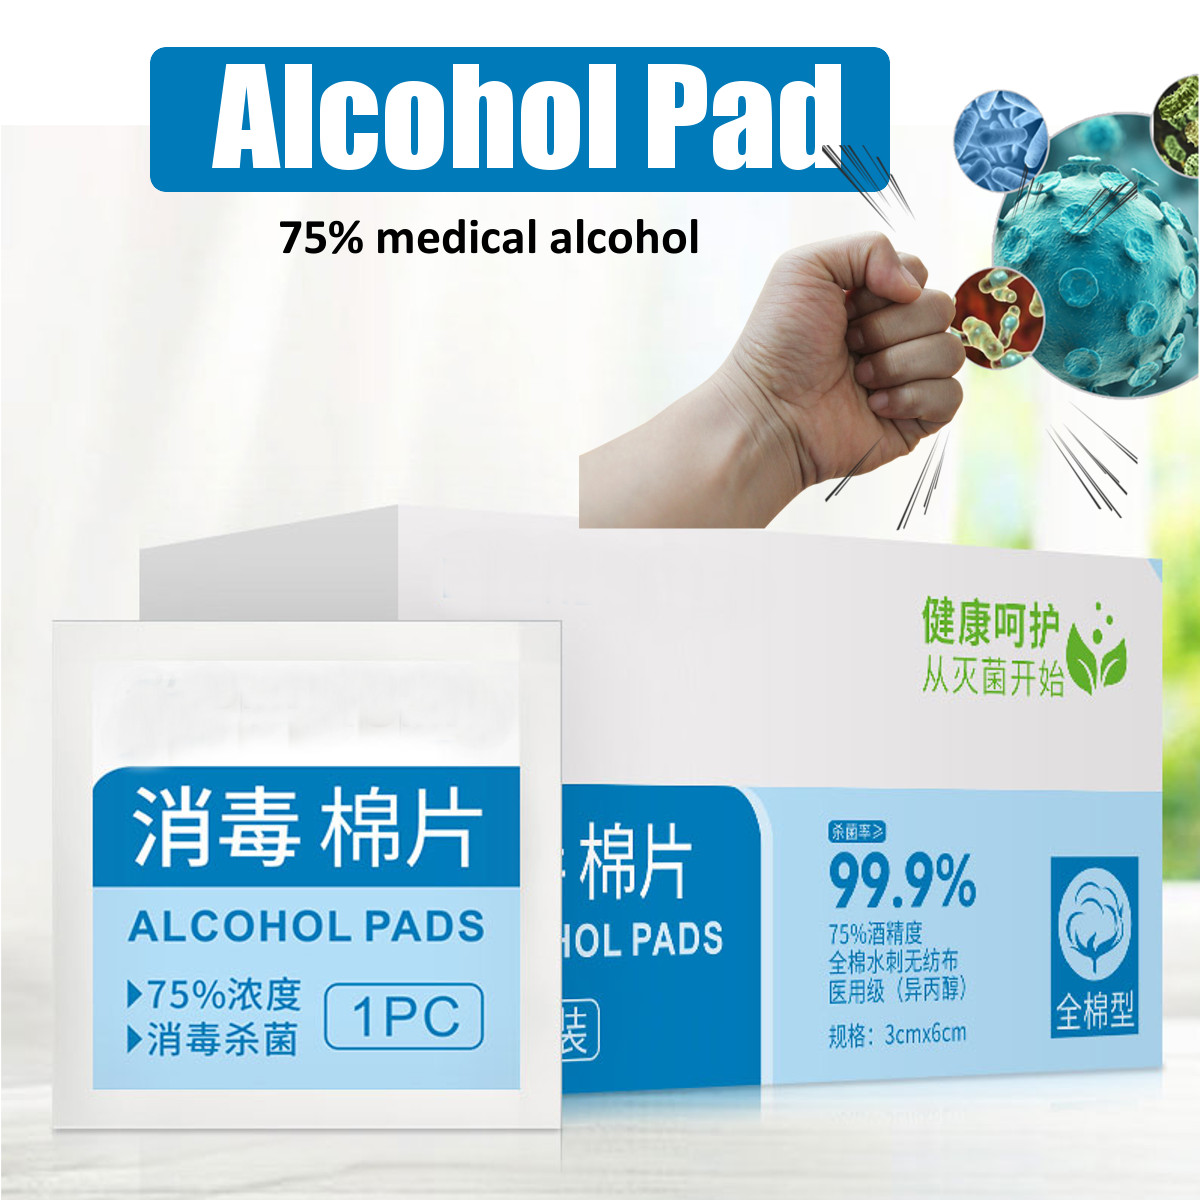 Portable 100pcs/bag Alcohol Swabs Pads Wipes Antiseptic Cleanser Cleaning Sterilization First Aid Home Makeup Accessory